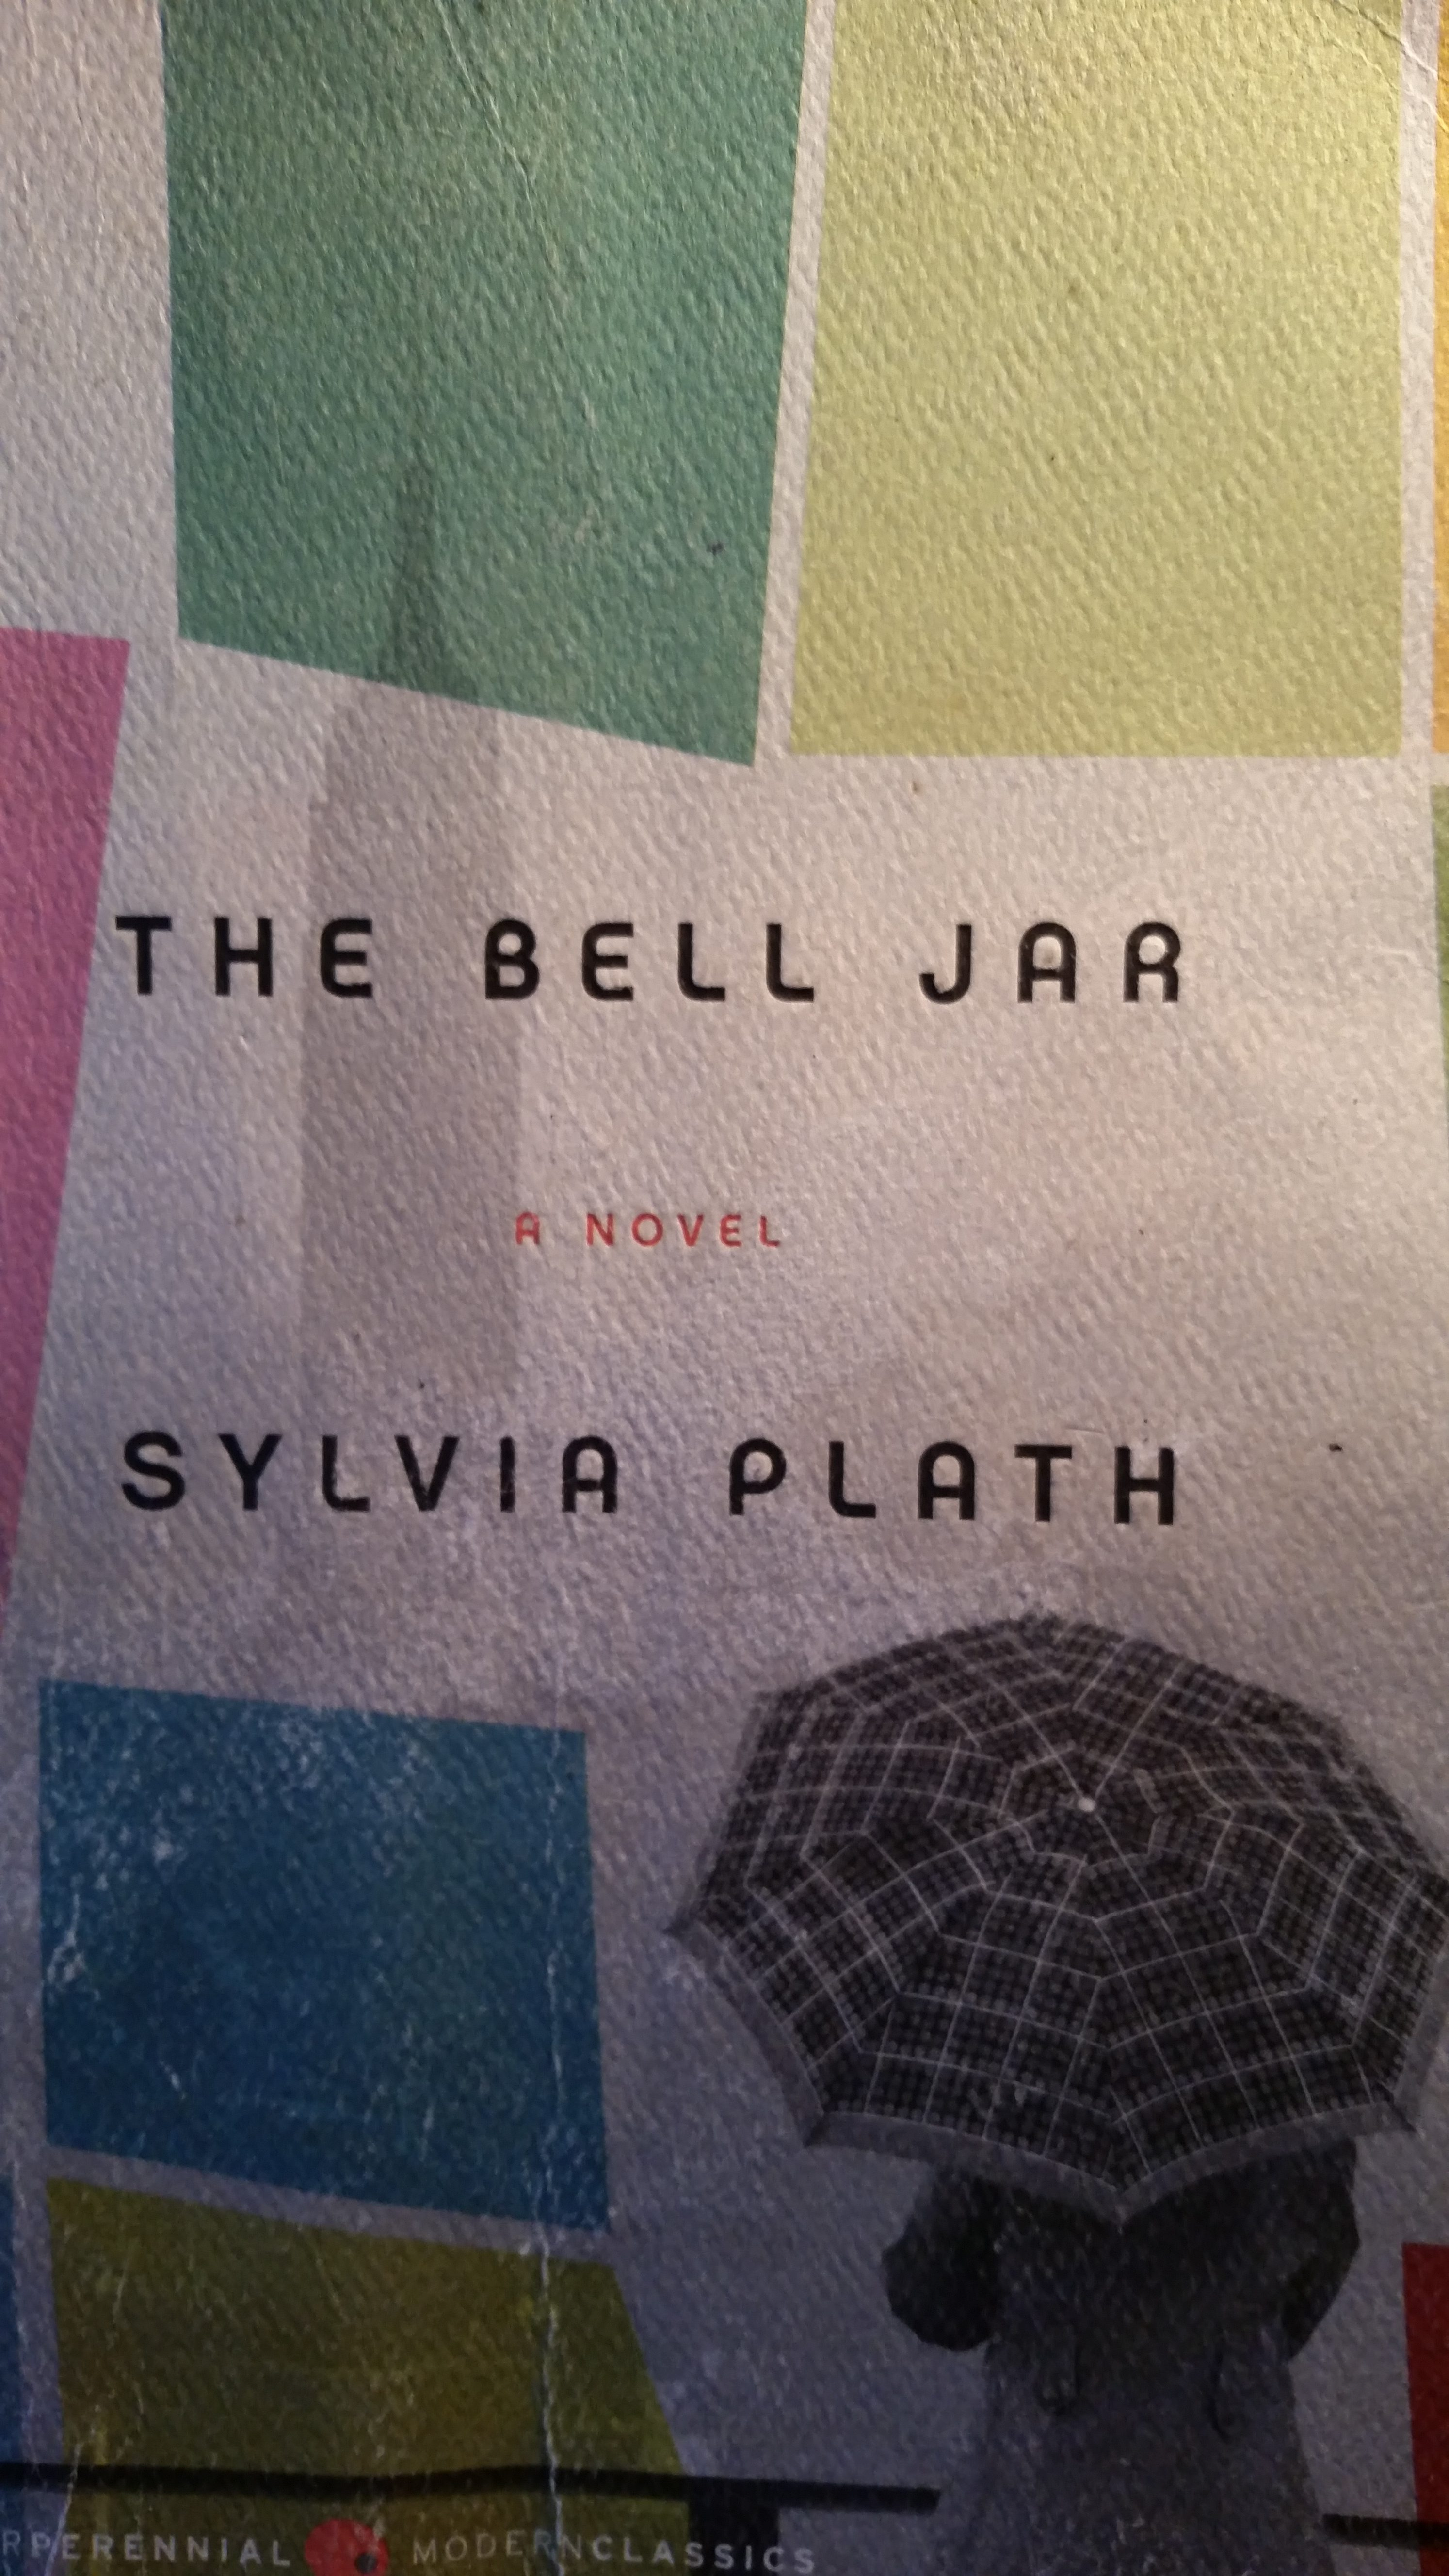 the bell jar by sylvia plath essays Point shirley by sylvia plath essay her novel, the bell jar, was first published under her own name in the united states in 1971, despite the protests of her family plath's collected poems, published in 1981, won the pulitzer prize.